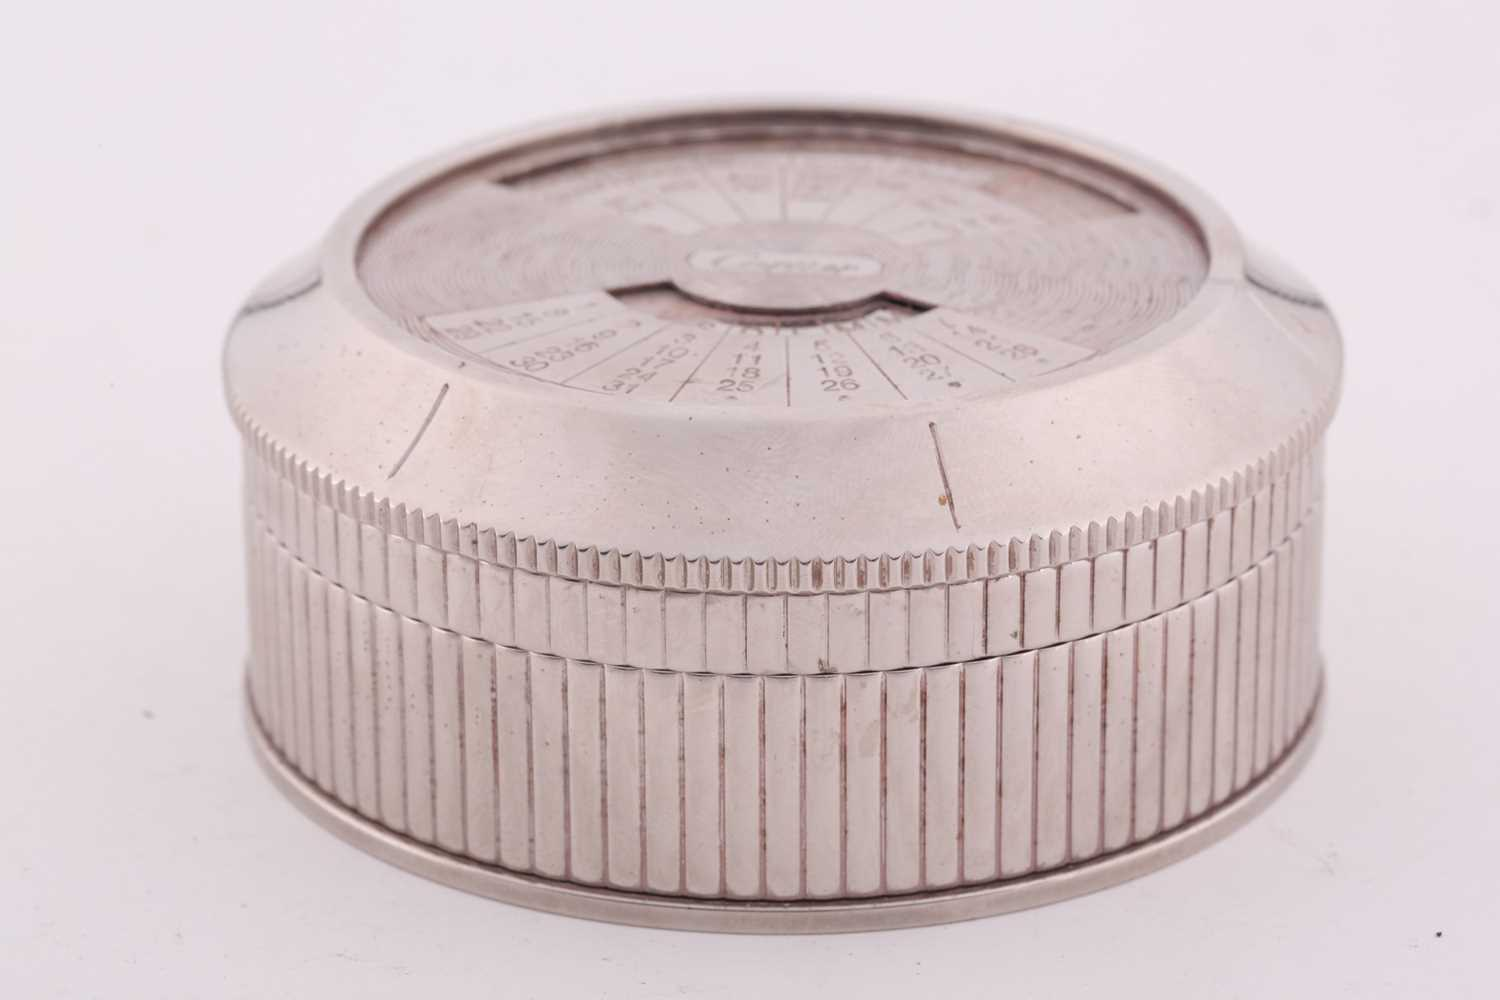 A Cartier chrome desk calender, with adjustable year, month, and date dial to lid, 8 cm diameter, - Image 2 of 5